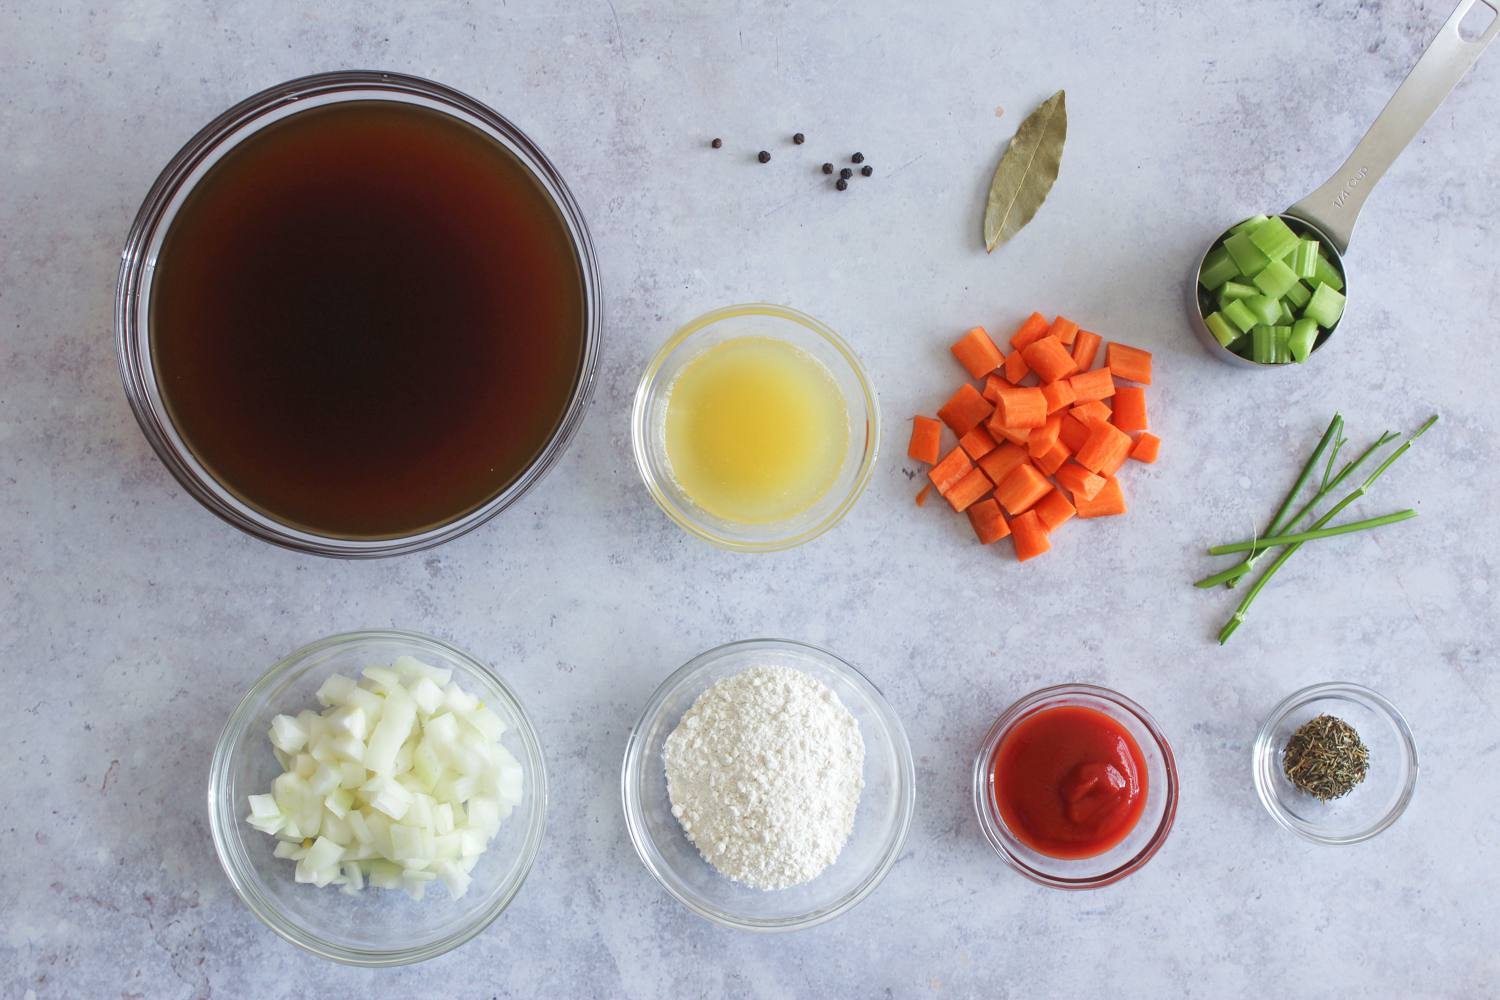 Ingredients for espagnole brown sauce